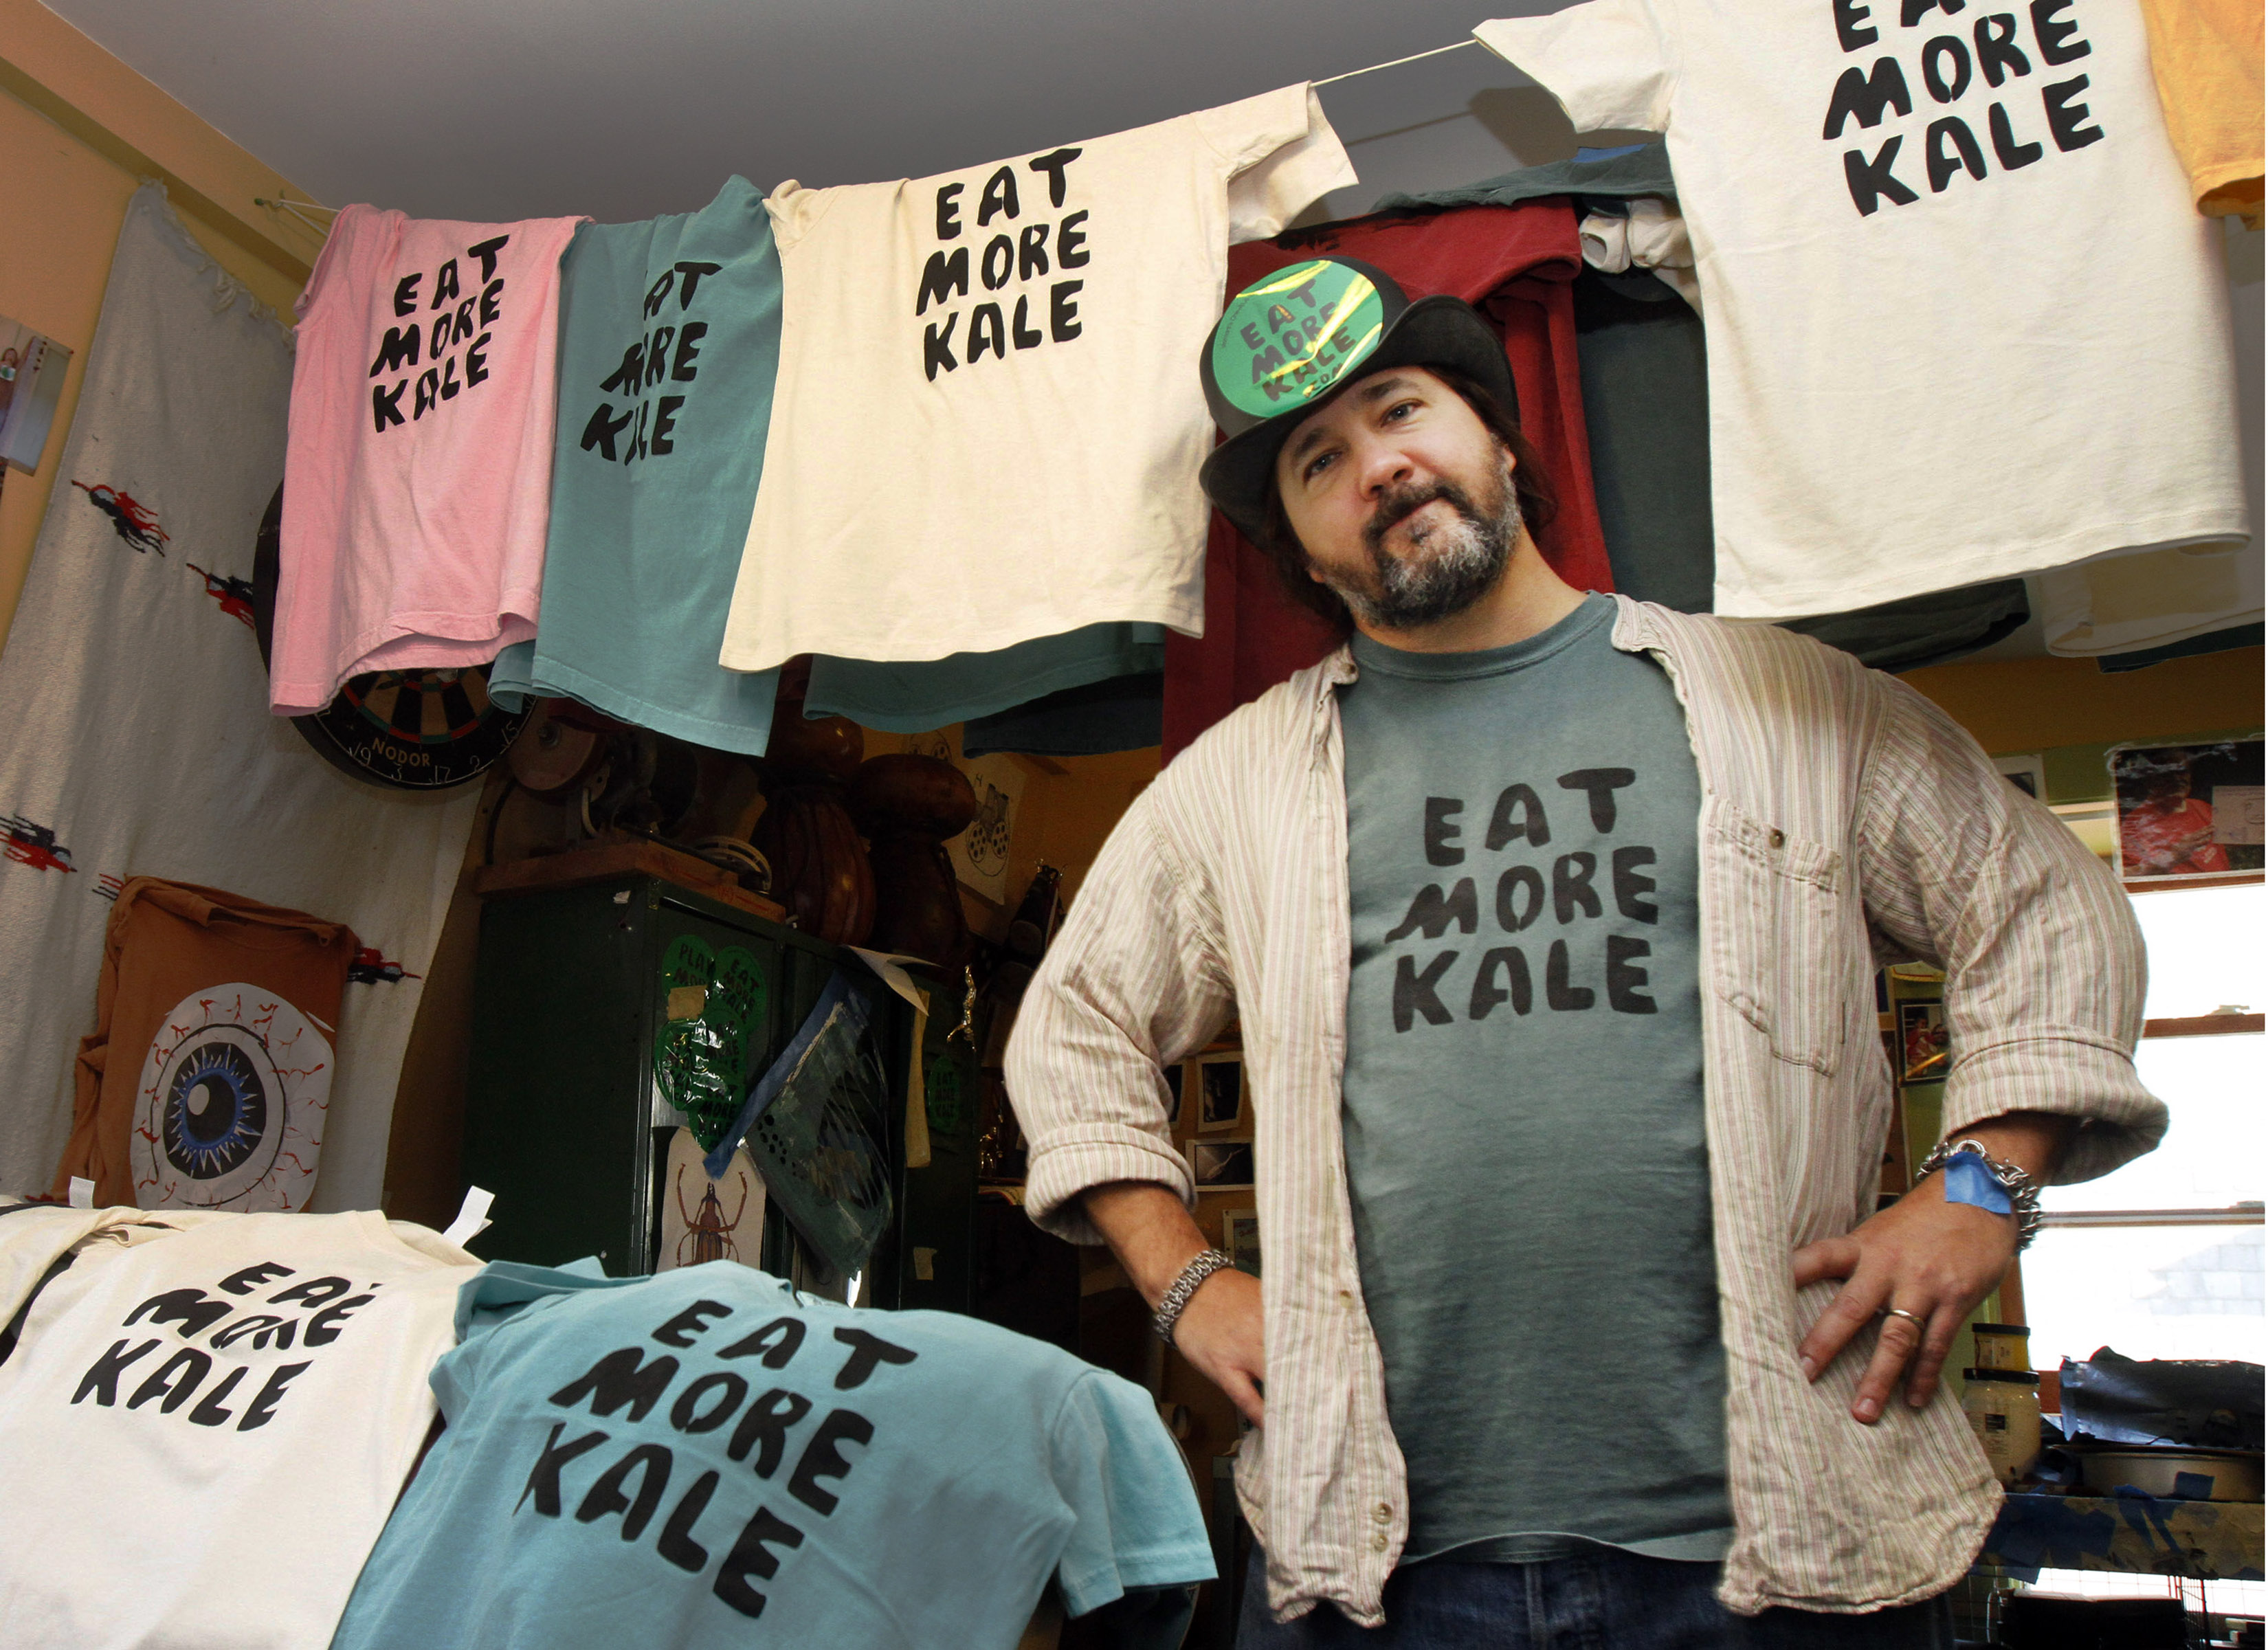 Bo Muller-Moore stands in his home studio in Montpelier, Vt. Muller-Moore, the Vermont man who is building a business around the term  eat more kale,  which has been plastered on T-shirts, bumper stickers and other items, is running into opposition from the second largest fried chicken retailer in the country, Chick-fil-A, on Nov. 22, 2011.